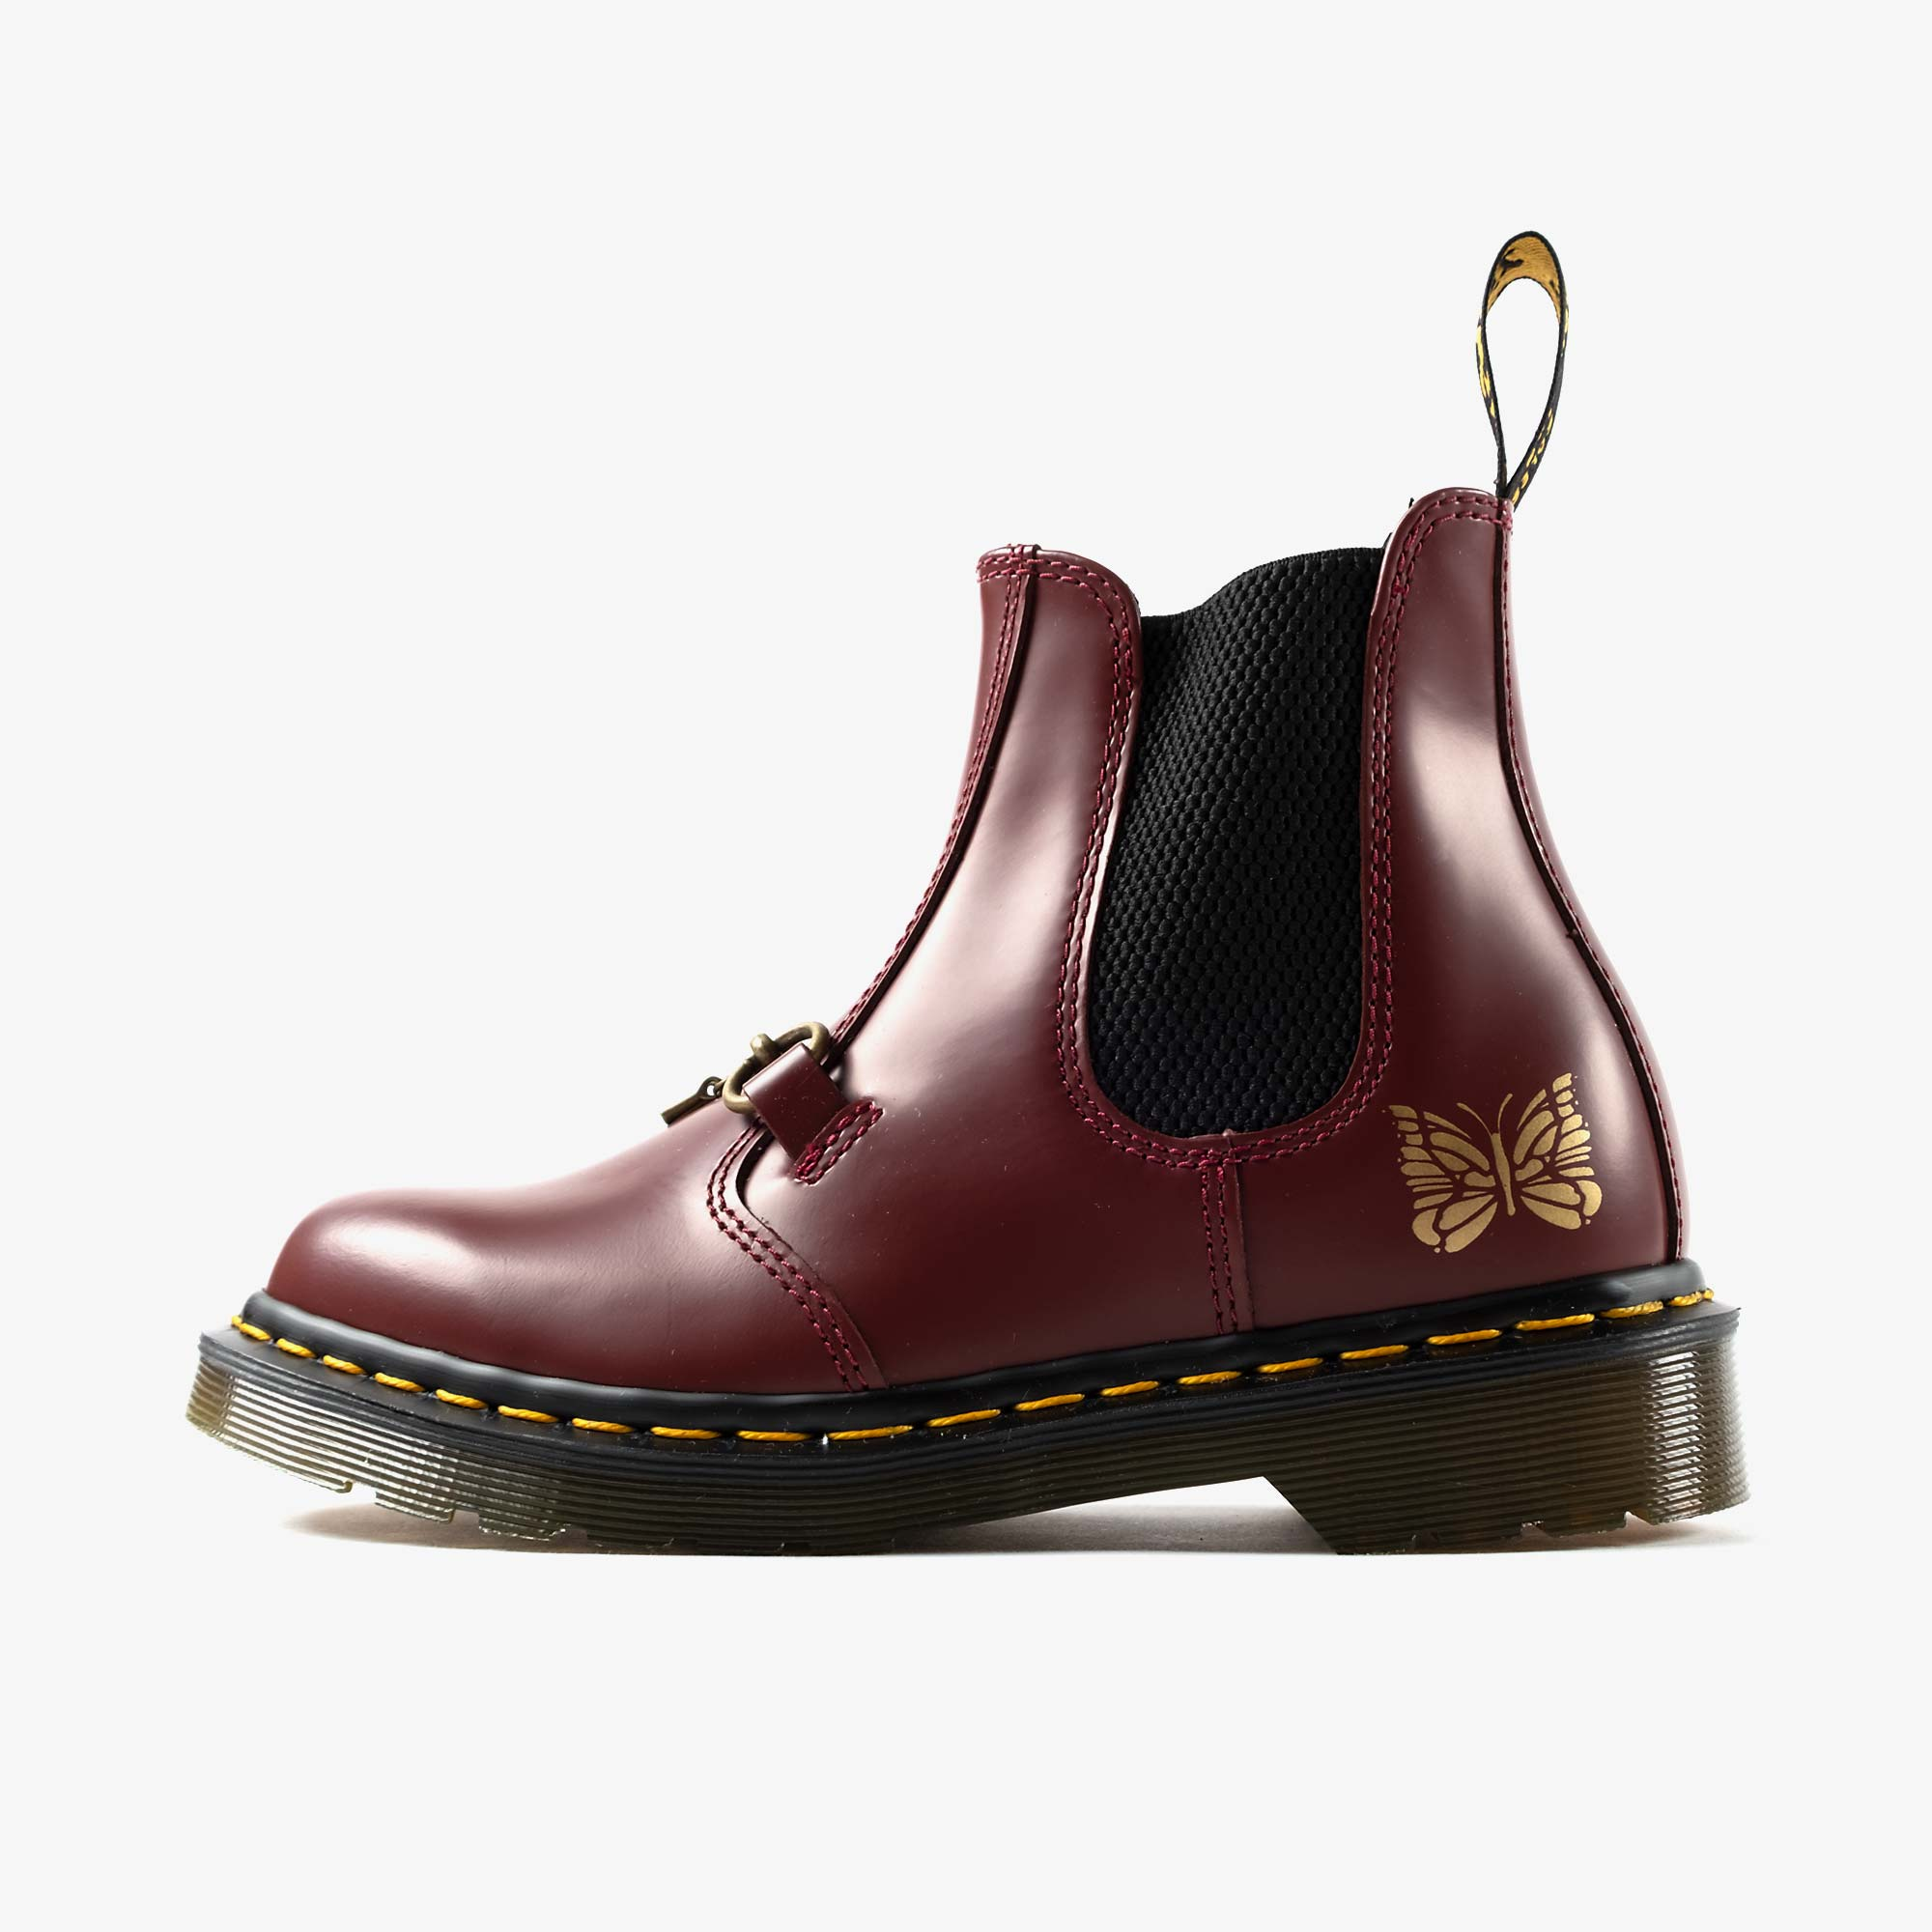 Needles Needles x Dr. Martens 2976 Snaffle - Cherry Red 3